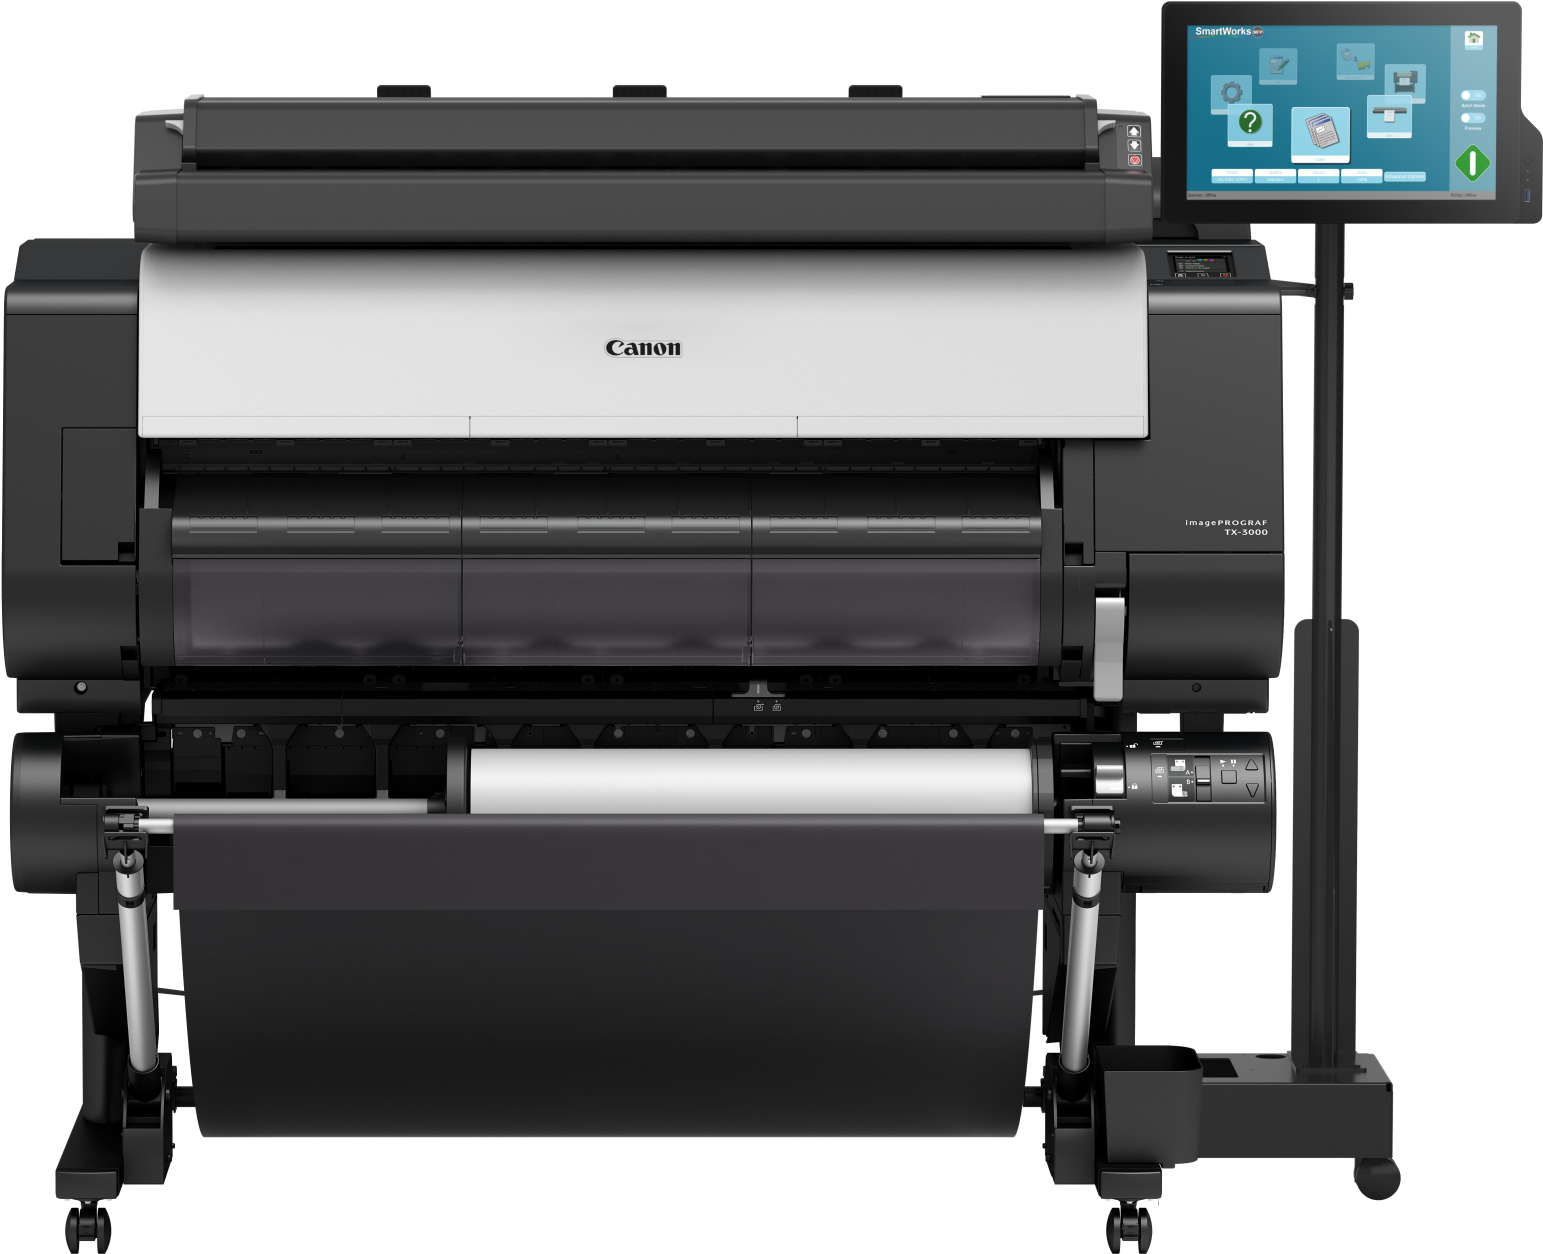 Aktuelle Angebote Kaufroboter Die Discounter Suchmaschine With An External Amplifier You Need To Supply A Speakers Sp2003 Imageprograf Tx 3000 T36 Groformatdrucker Scanner Inkl Stand A1 9144cm 2400x